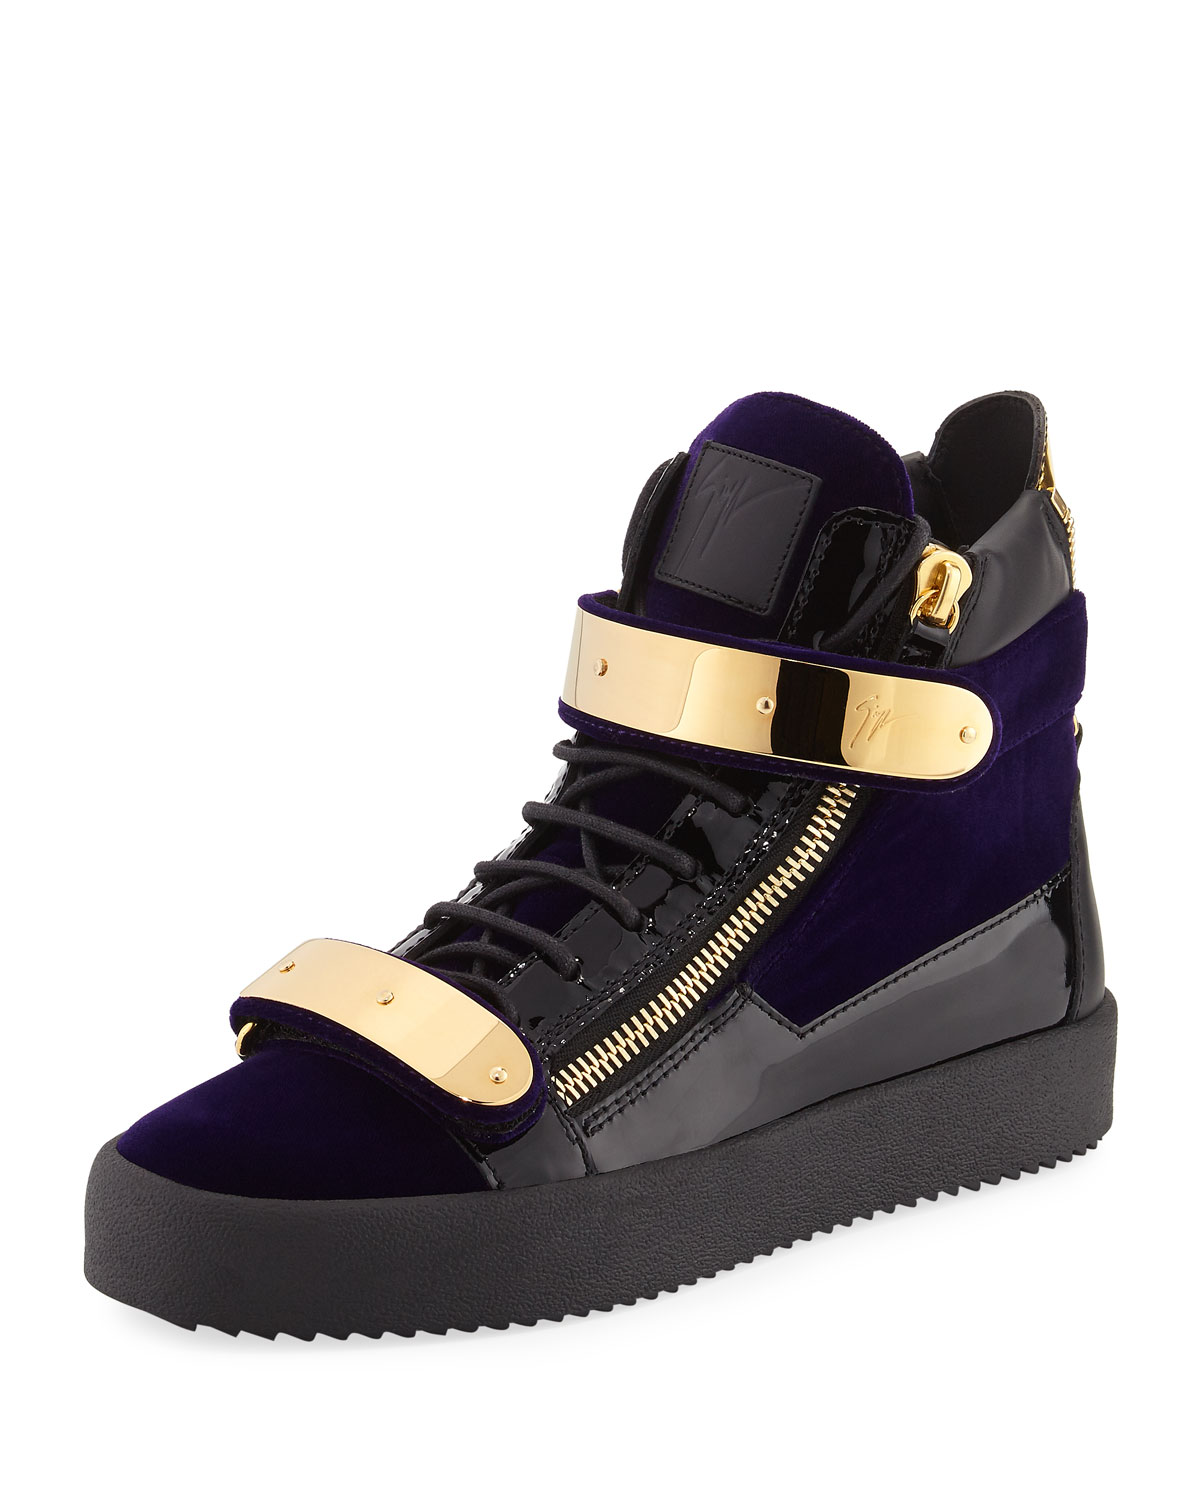 43ef49eeb51ec Giuseppe Zanotti Men's Velvet Double-Bar High-Top Sneaker | Neiman ...